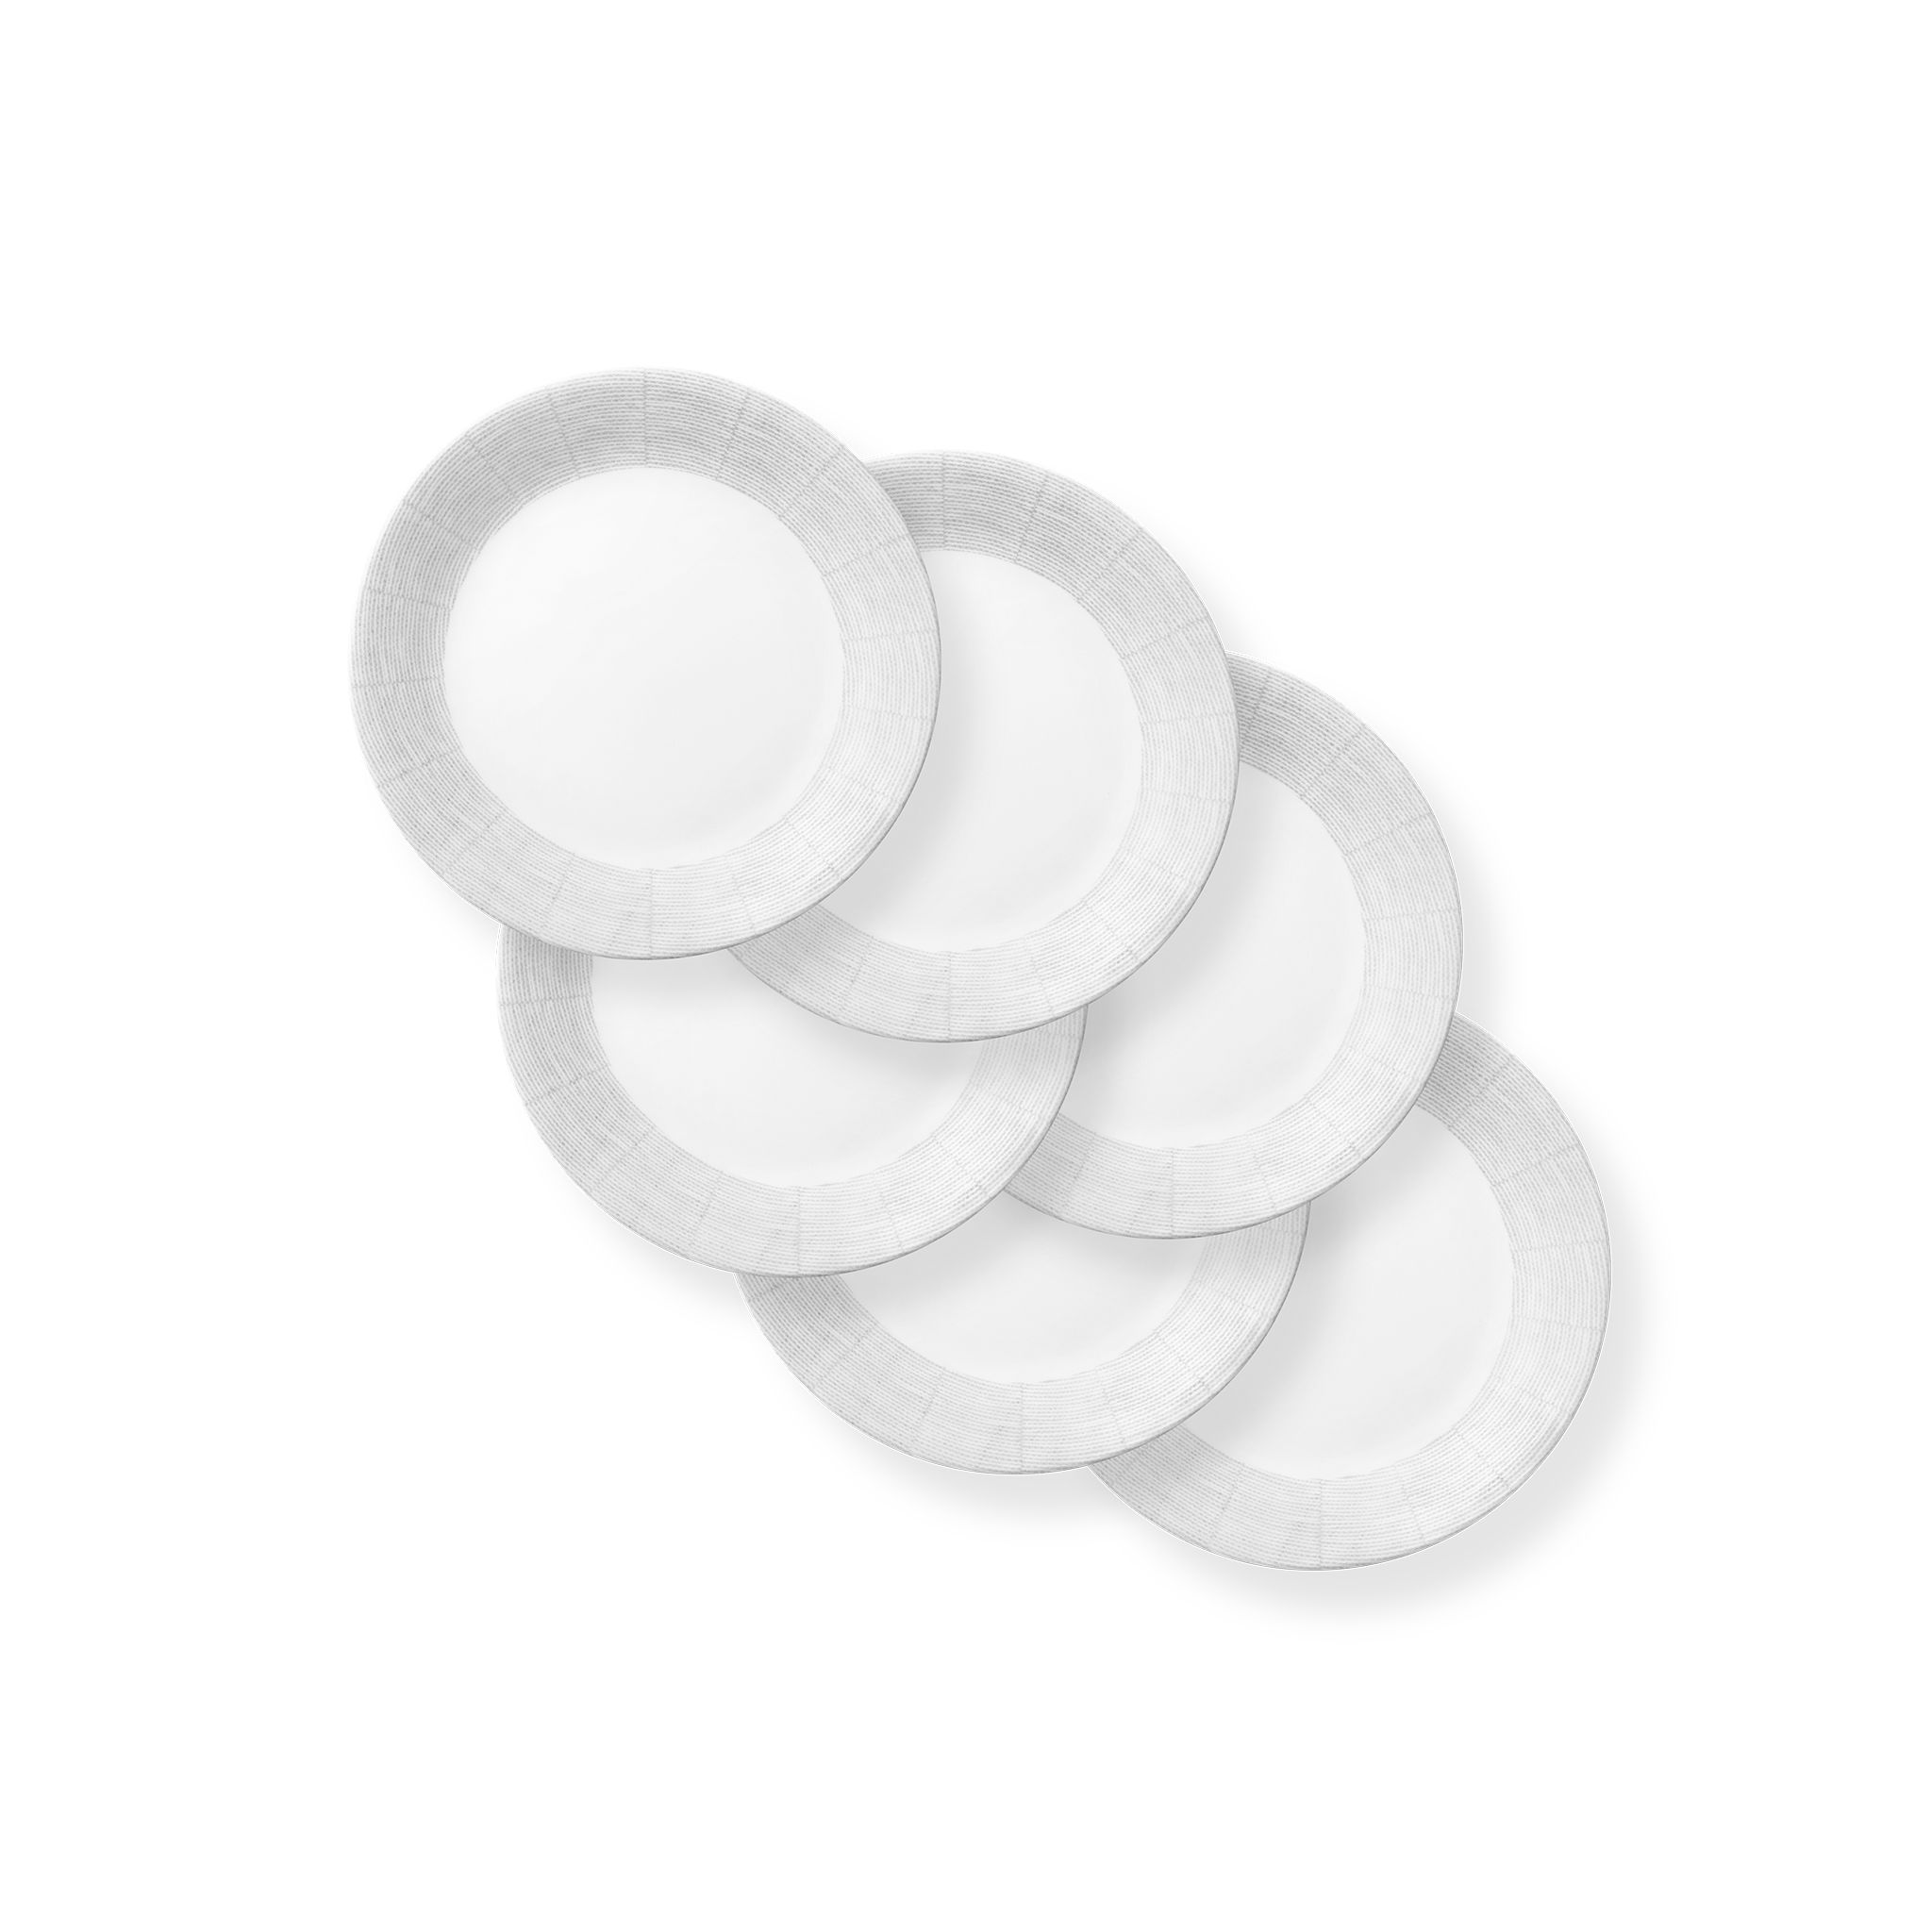 Woven Lines 8.5? Salad Plates, 6-pack